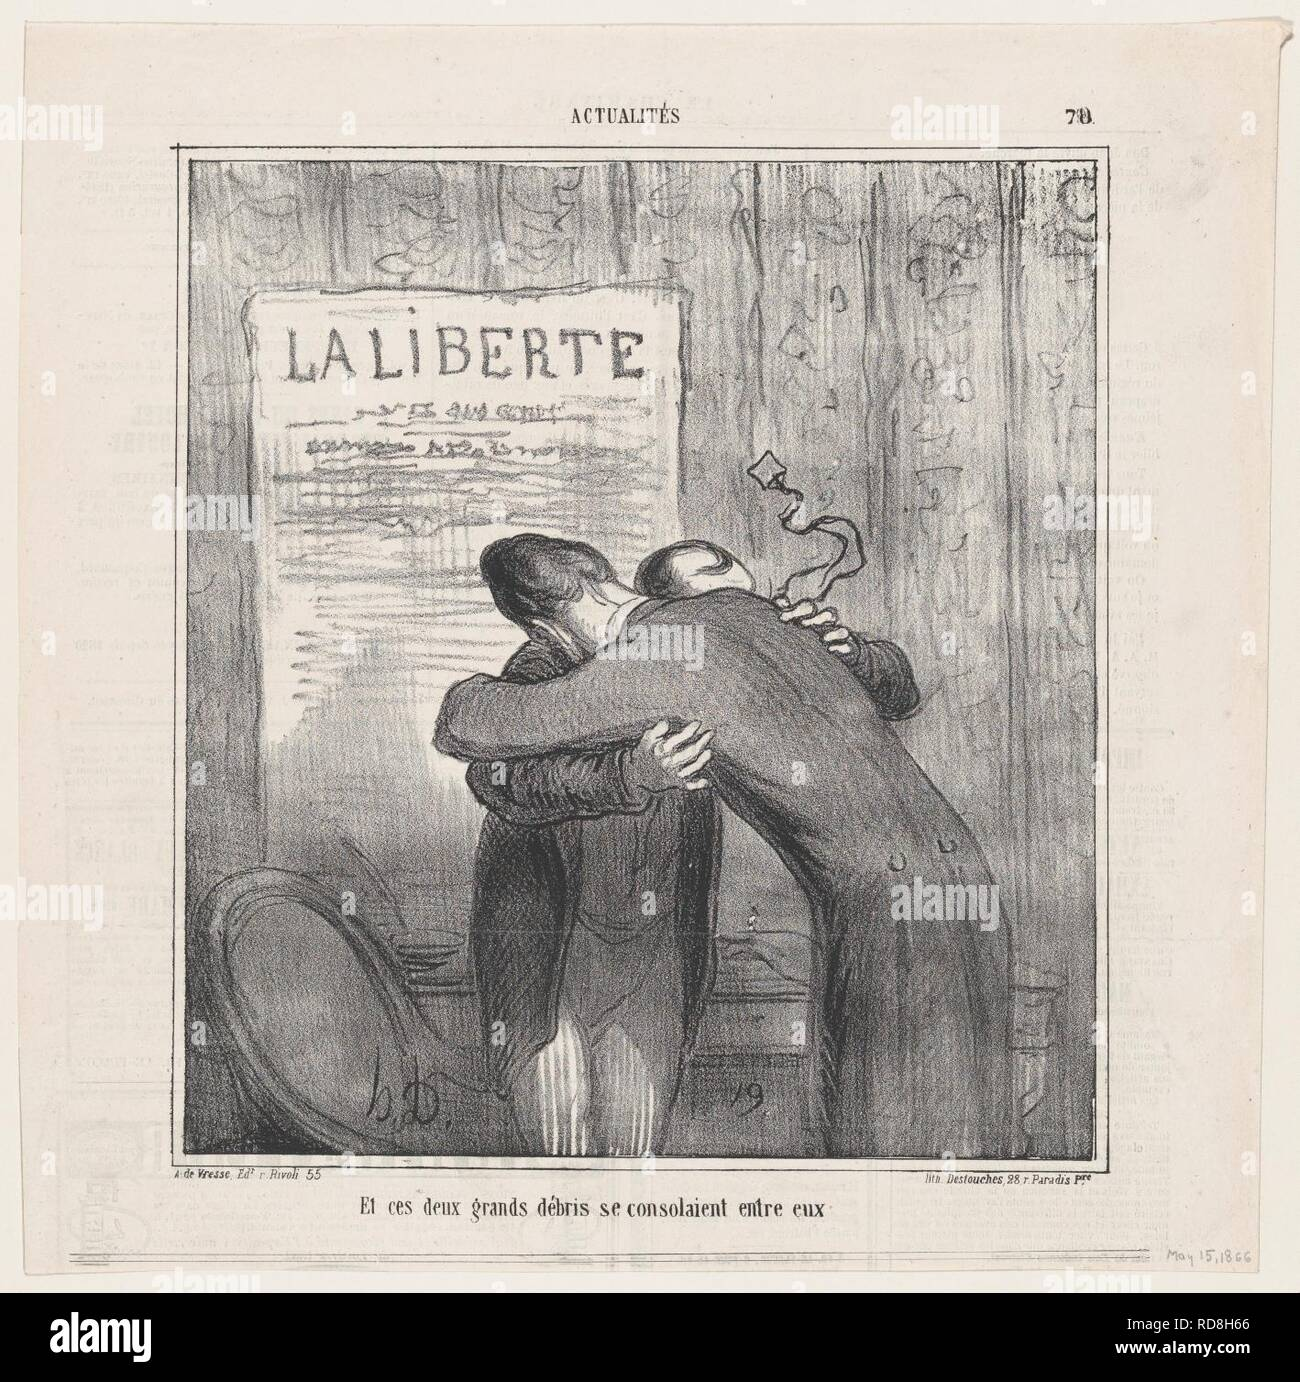 And these two old wrecks consoled each other, from 'News of the day,' published in Le Charivari, May 15, 1866 - Stock Image